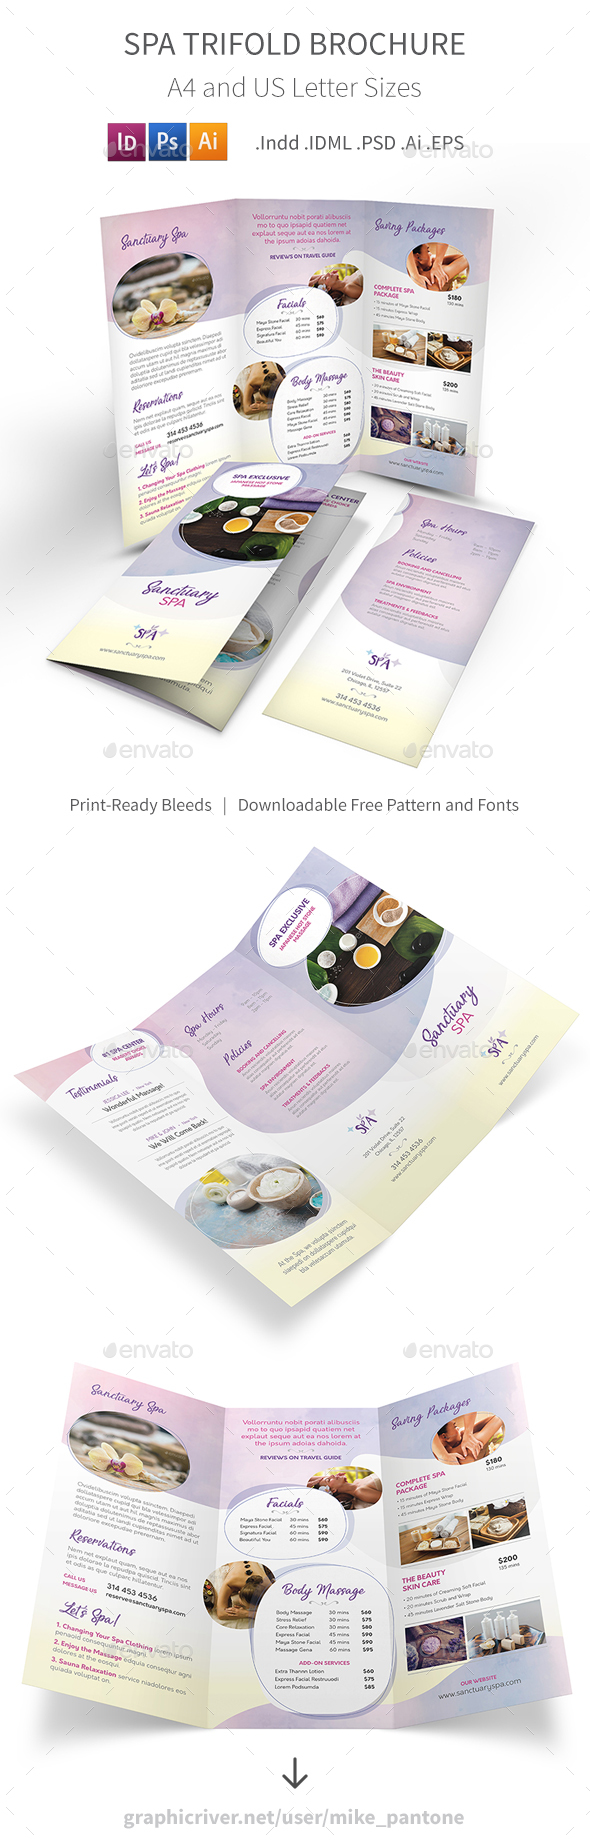 Spa Trifold Brochure 7 - Informational Brochures